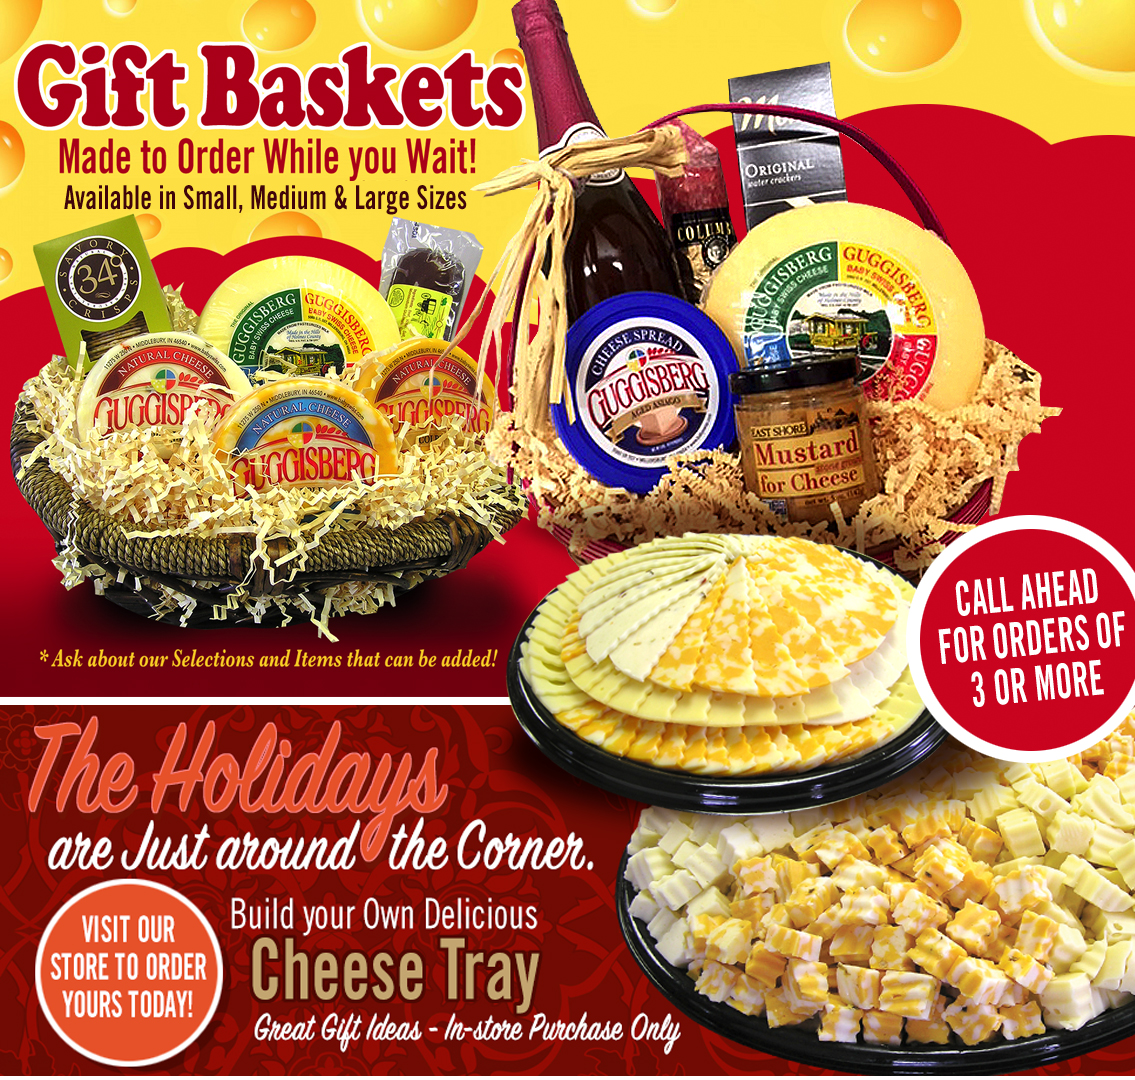 Delicious Gift Baskets